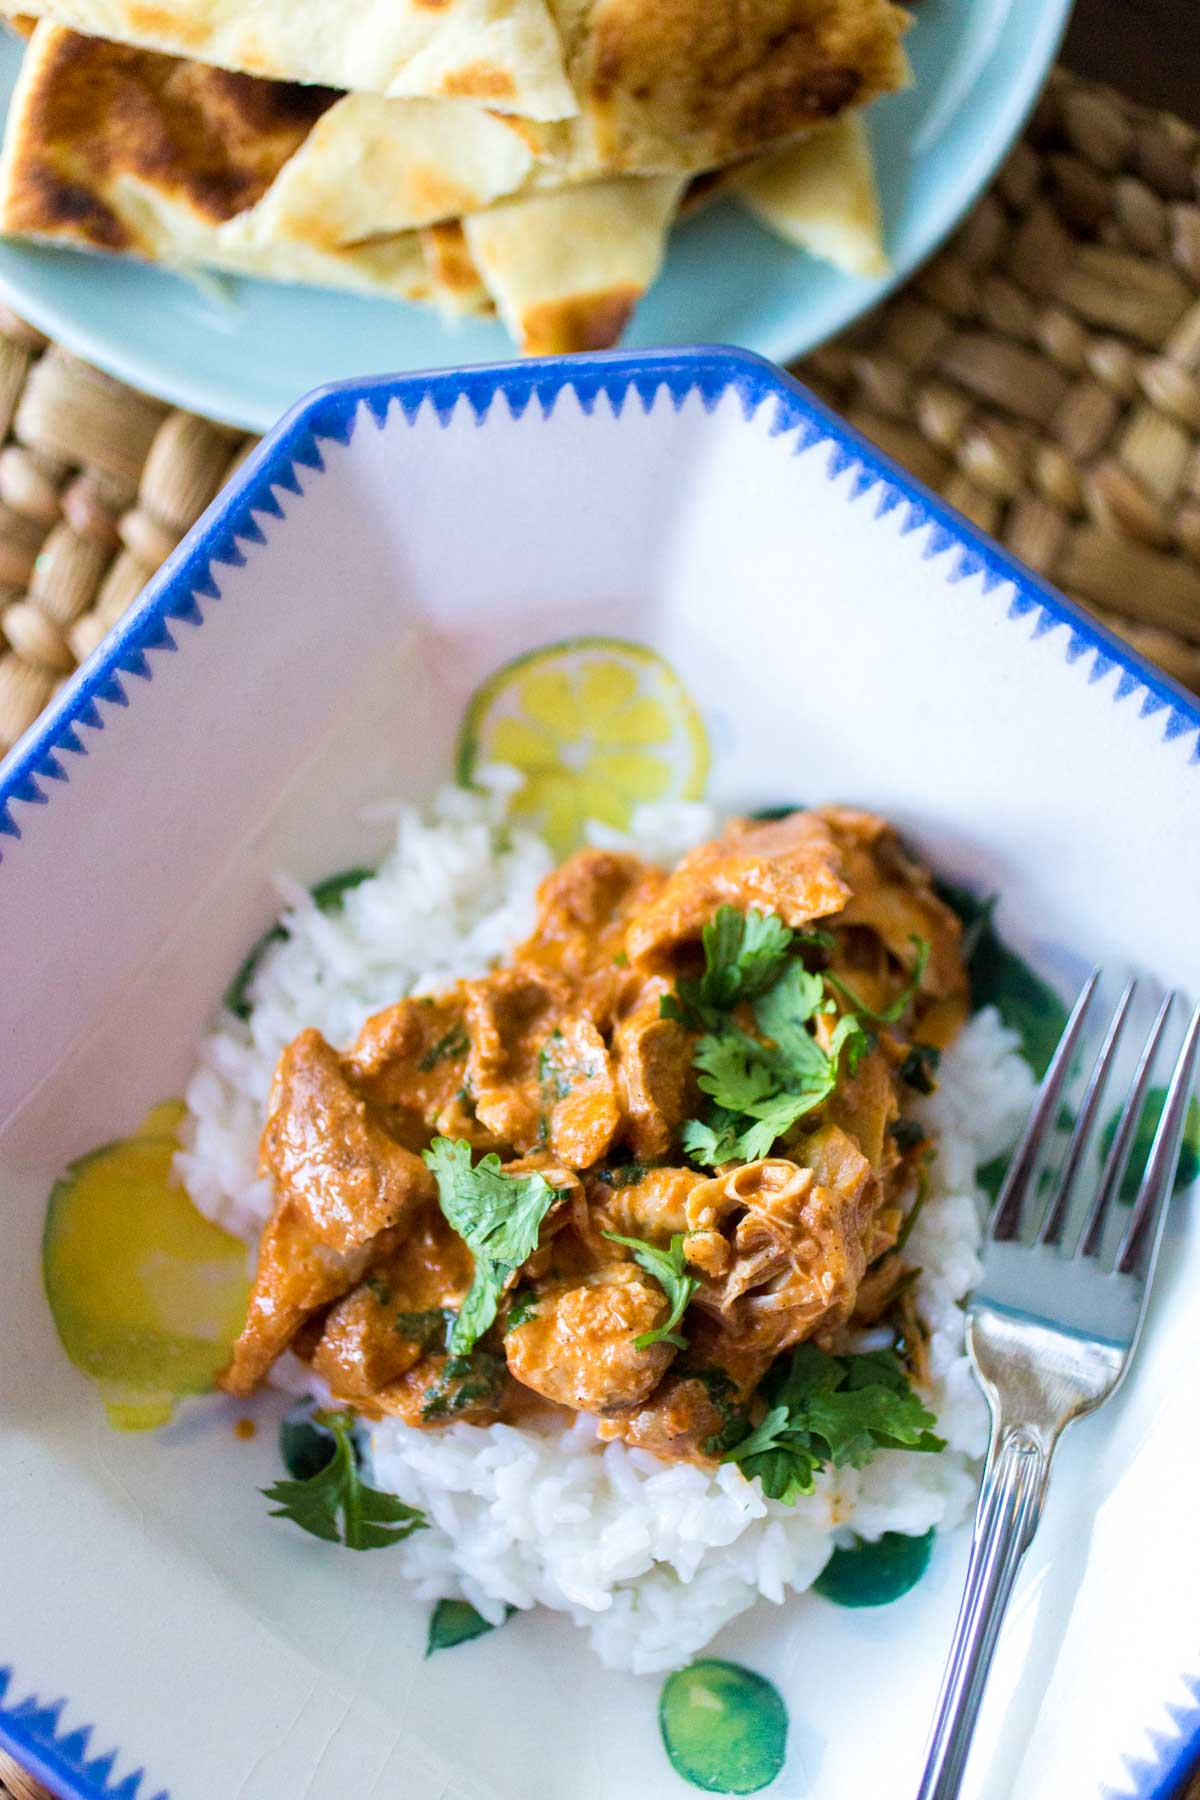 The final dish of butter chicken has been served in a dinner blow with rice and fresh cilantro.